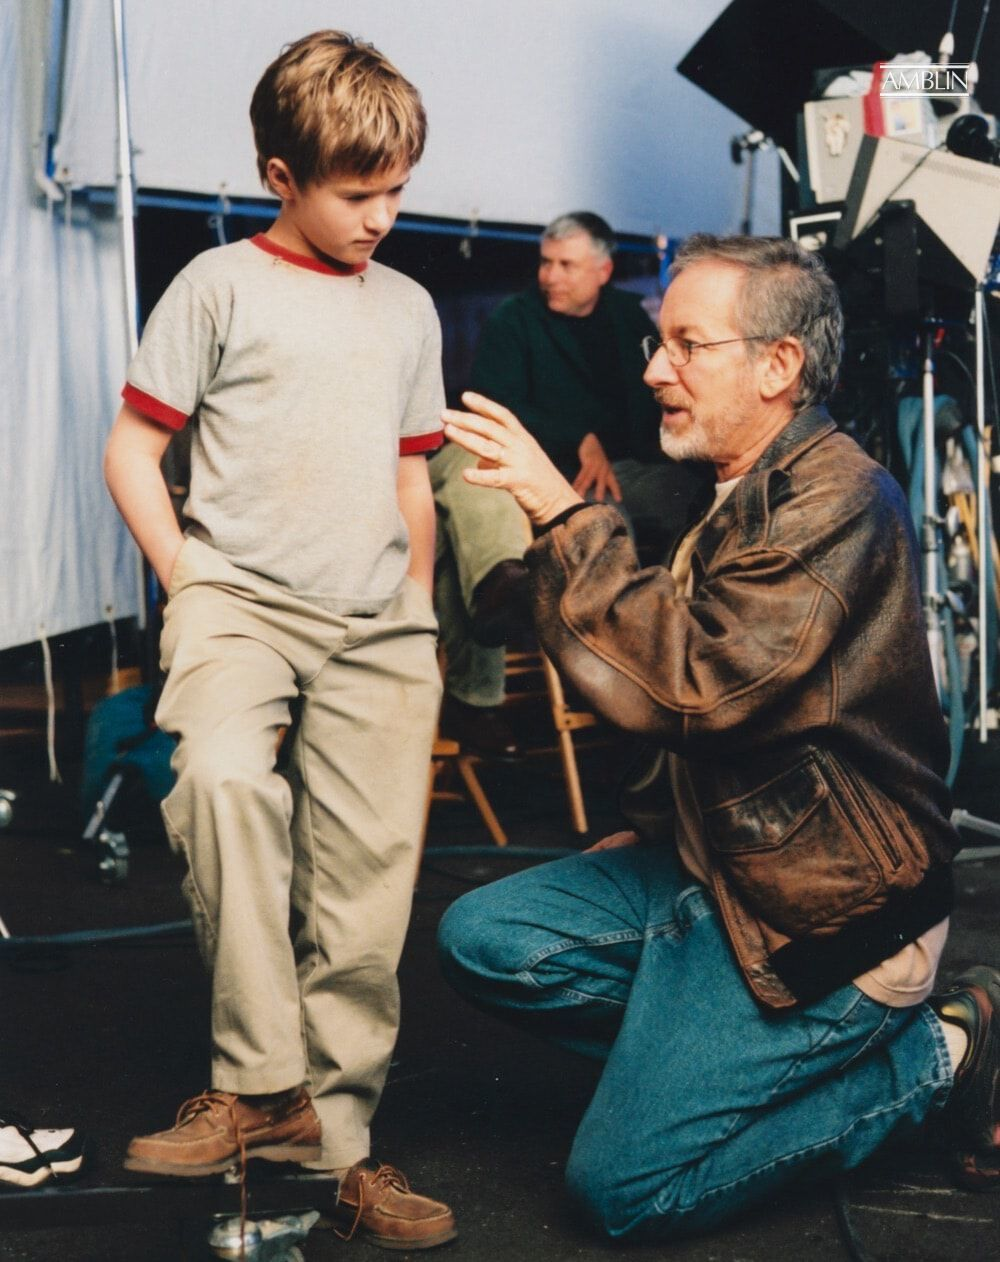 A young Haley Joel Osment, who plays the robot boy David, listens intently to his director's ideas in production on A.I. Artificial Intelligence.